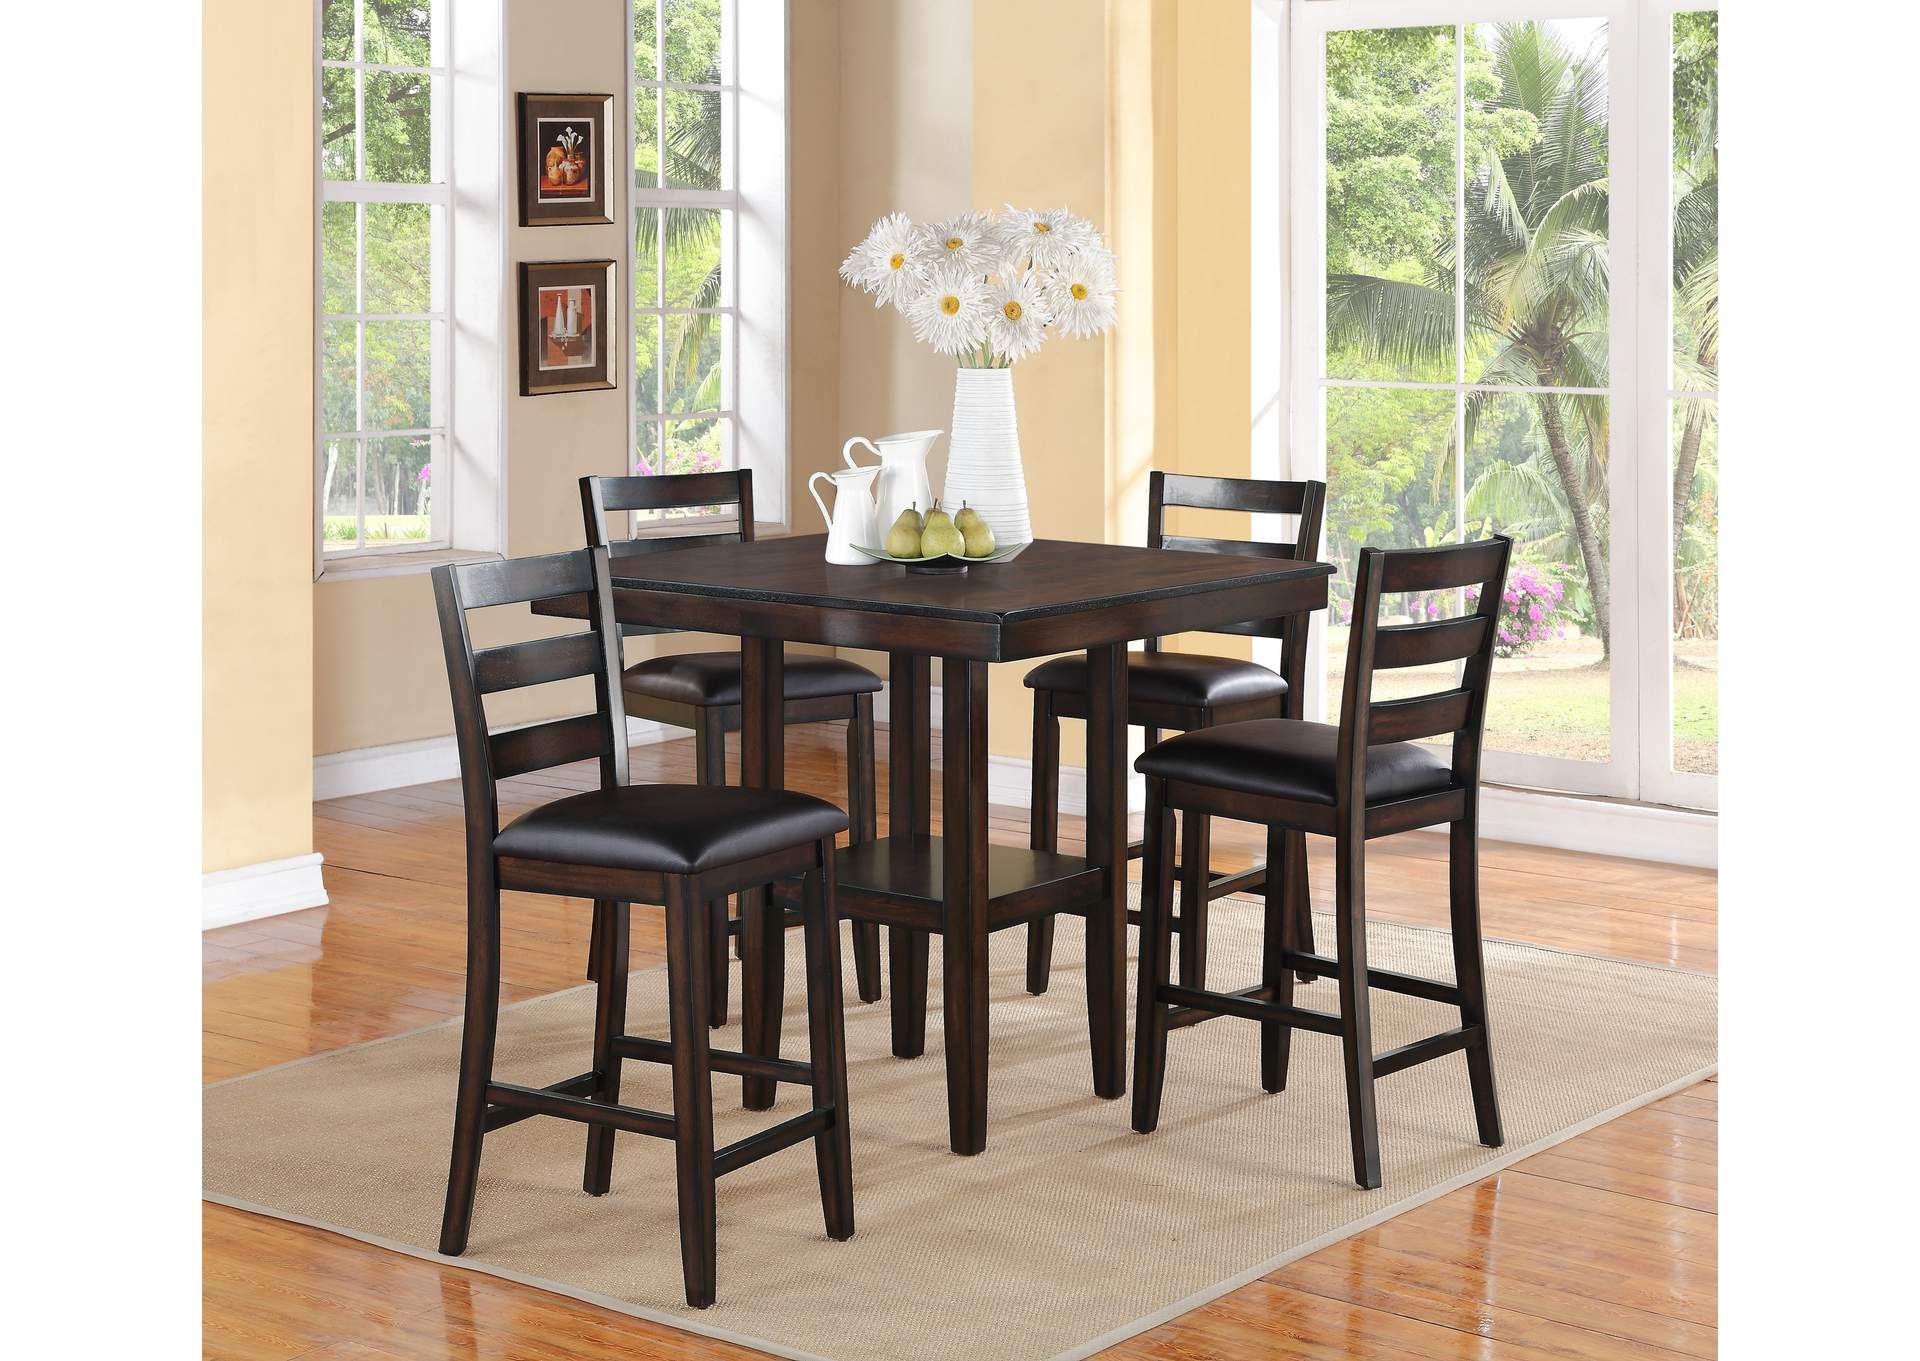 Tahoe Counter Height Table Set w/4 Side Chairs,Crown Mark